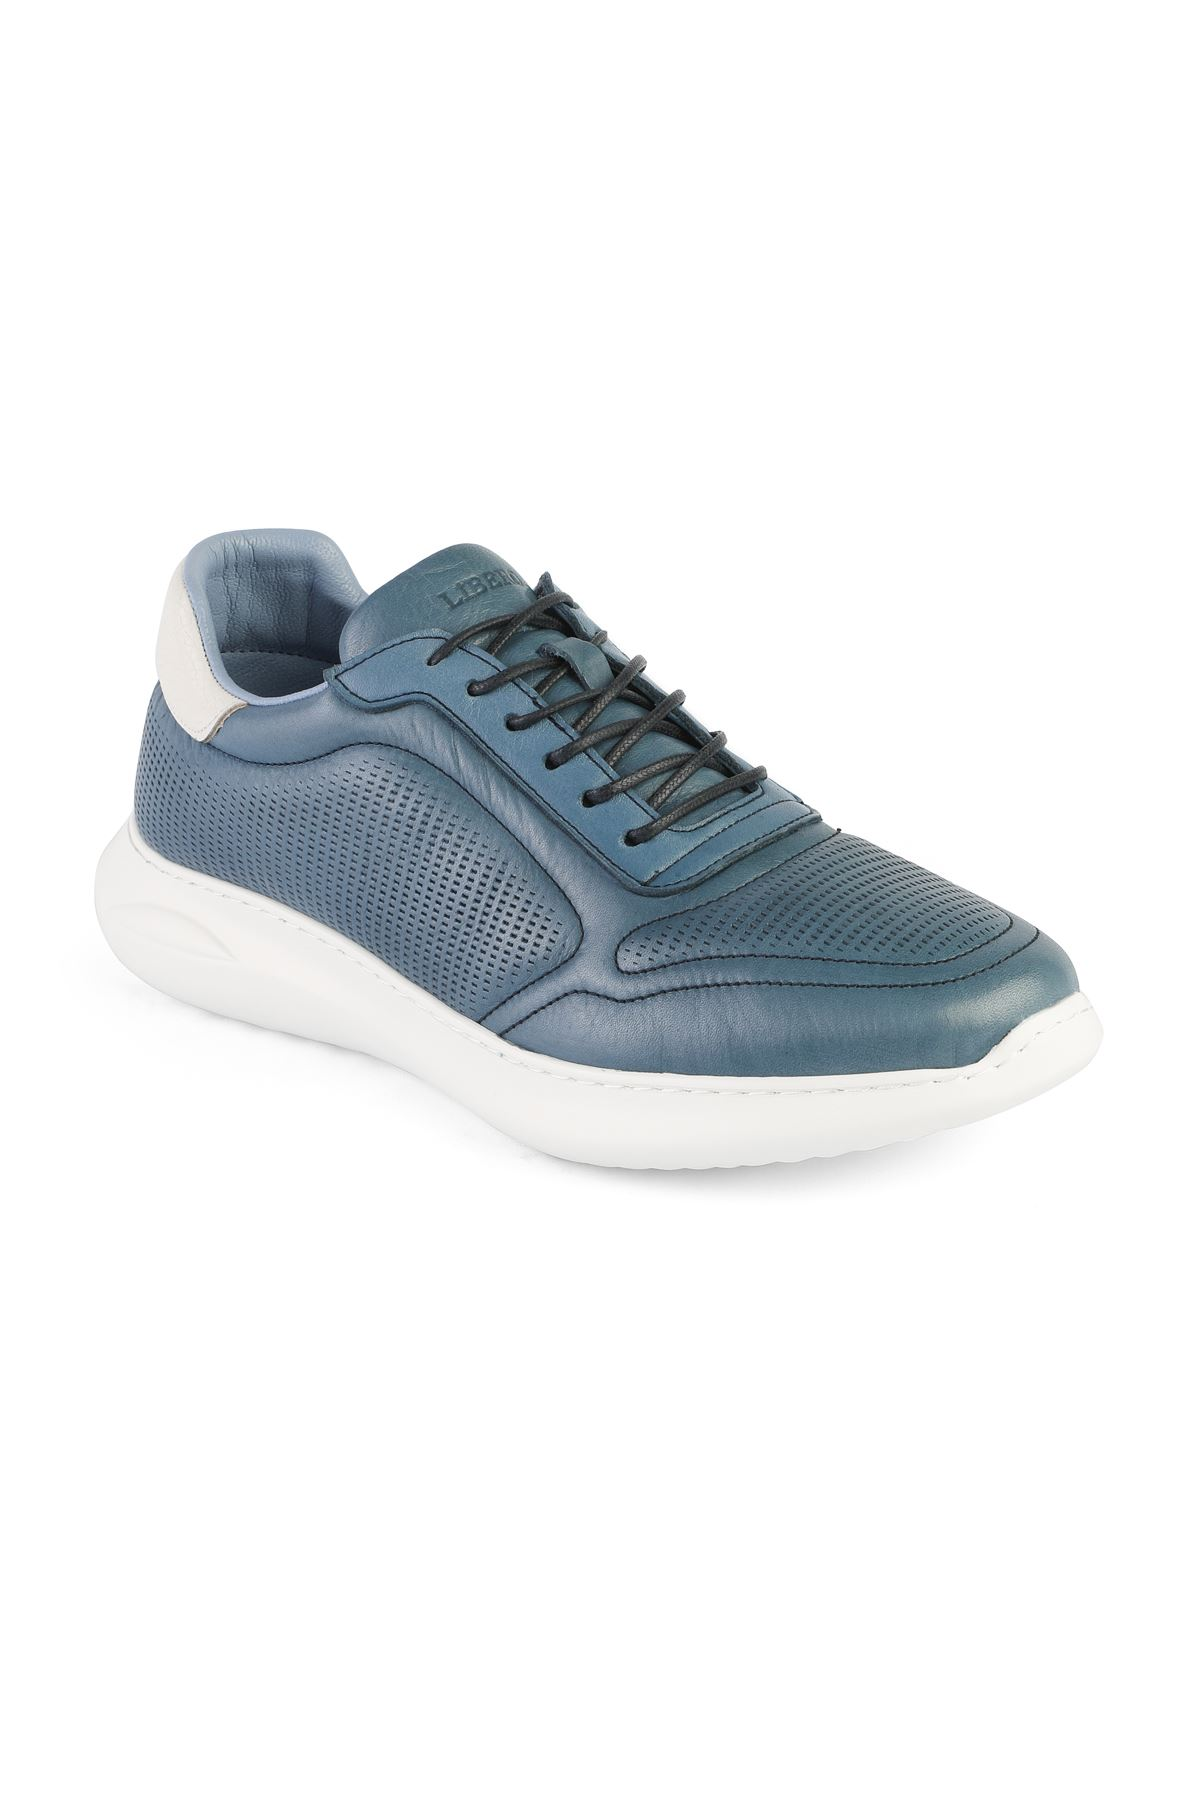 Libero 3401 Blue Sport Shoes